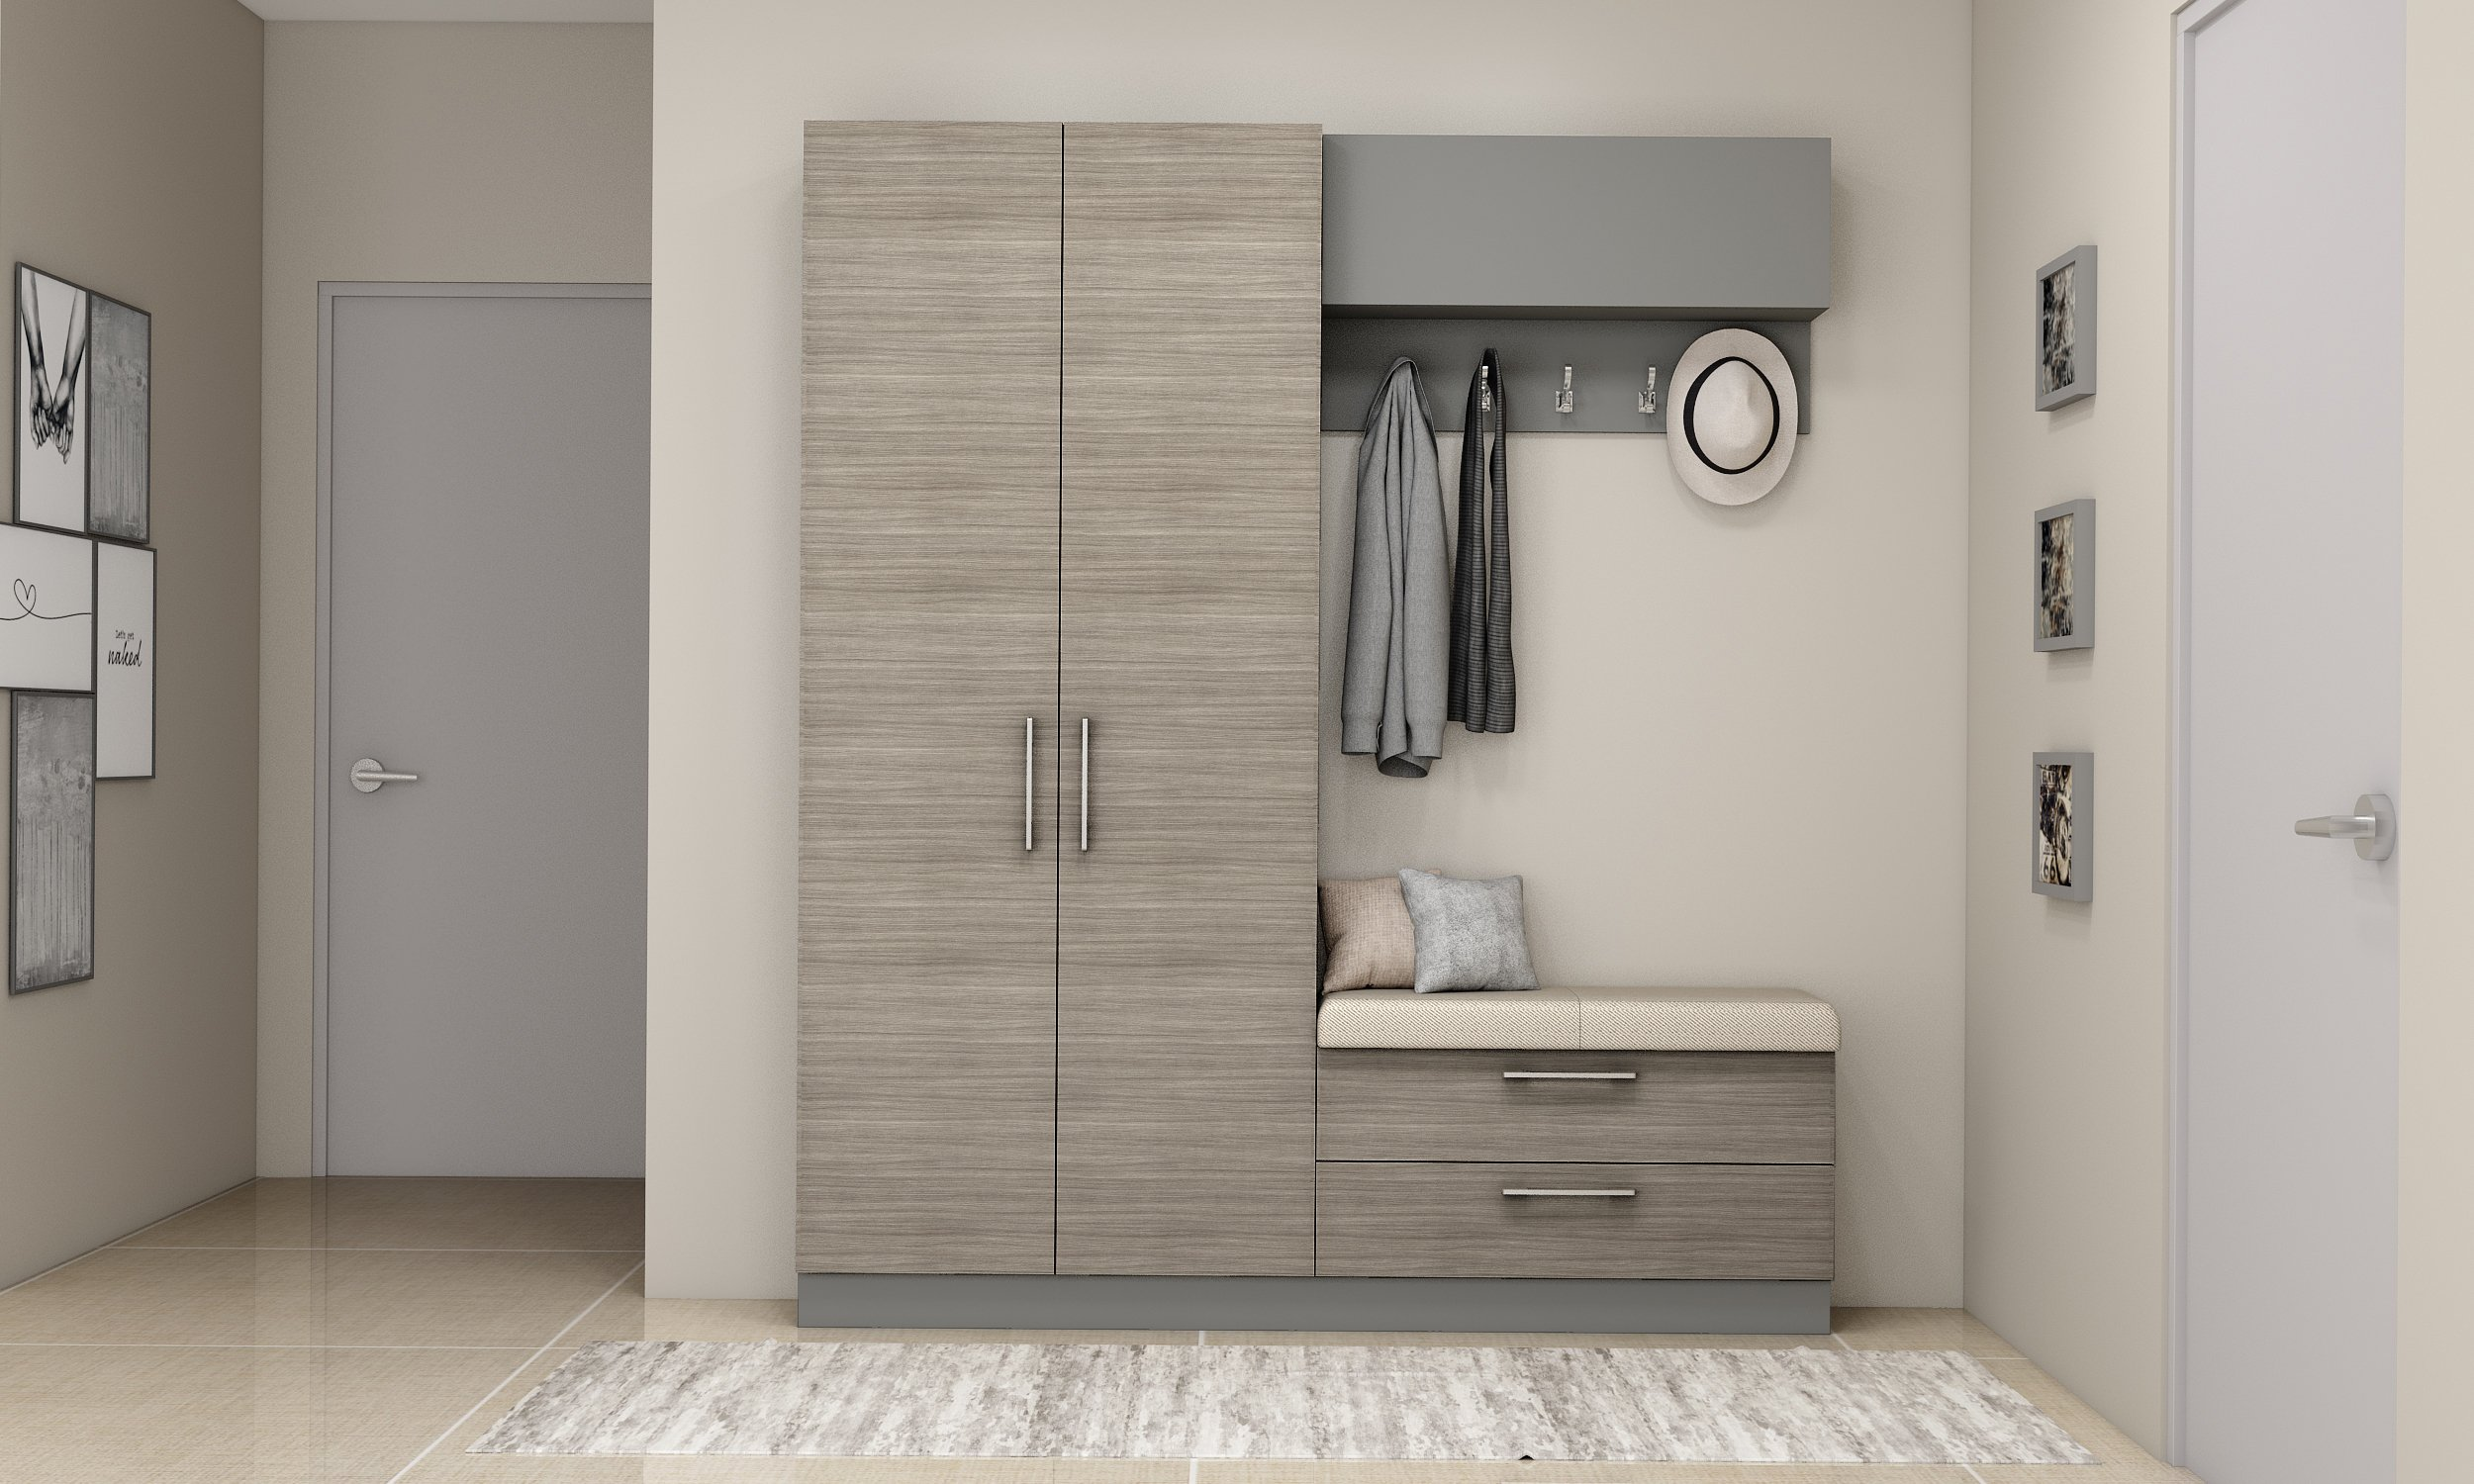 Hallway storage units with coat hanger in woodgrain and dust grey finish